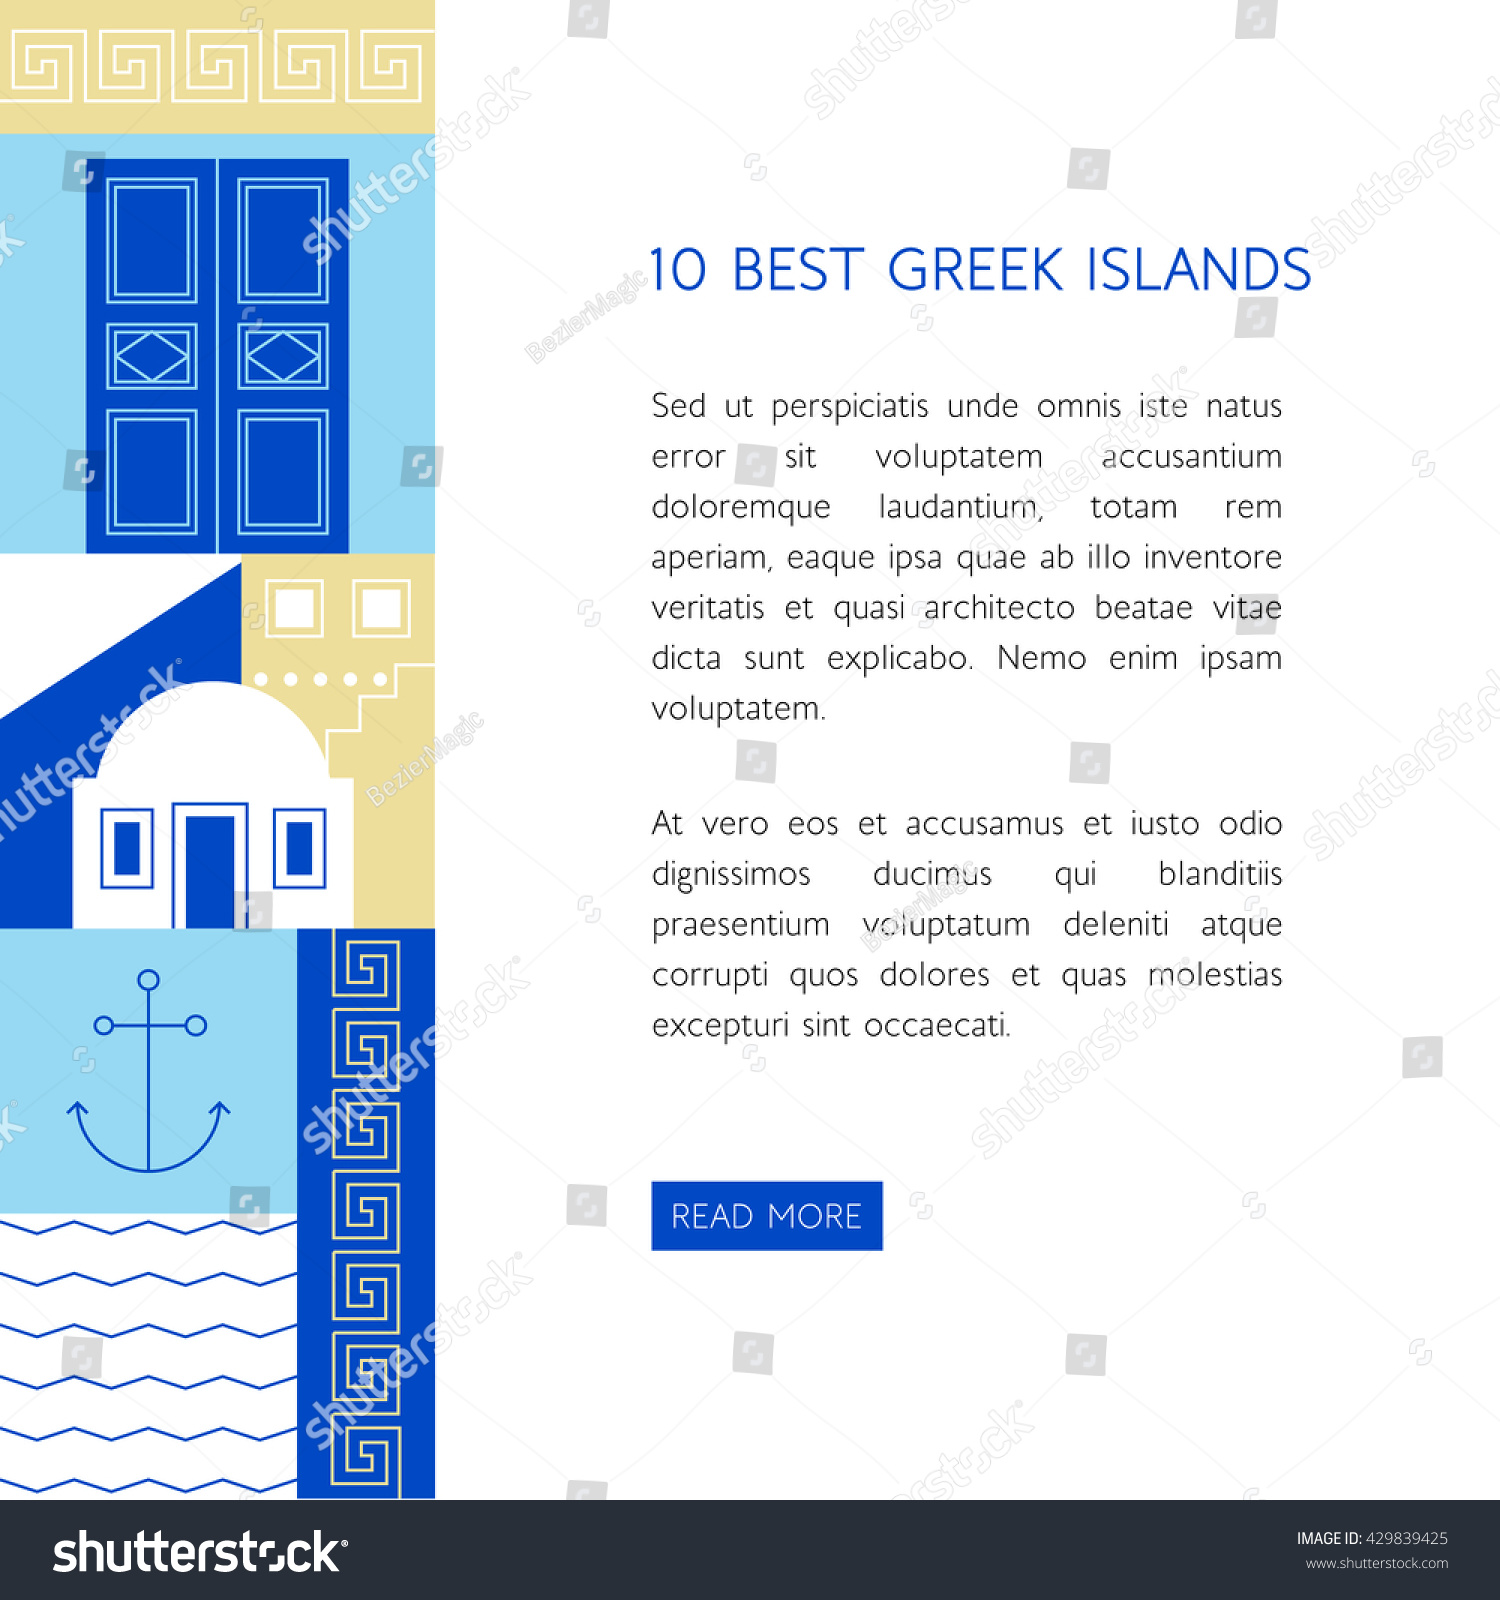 Greece travel concept different greek symbols stock vector greece travel concept with different greek symbols and colors in flat styleurism banner template buycottarizona